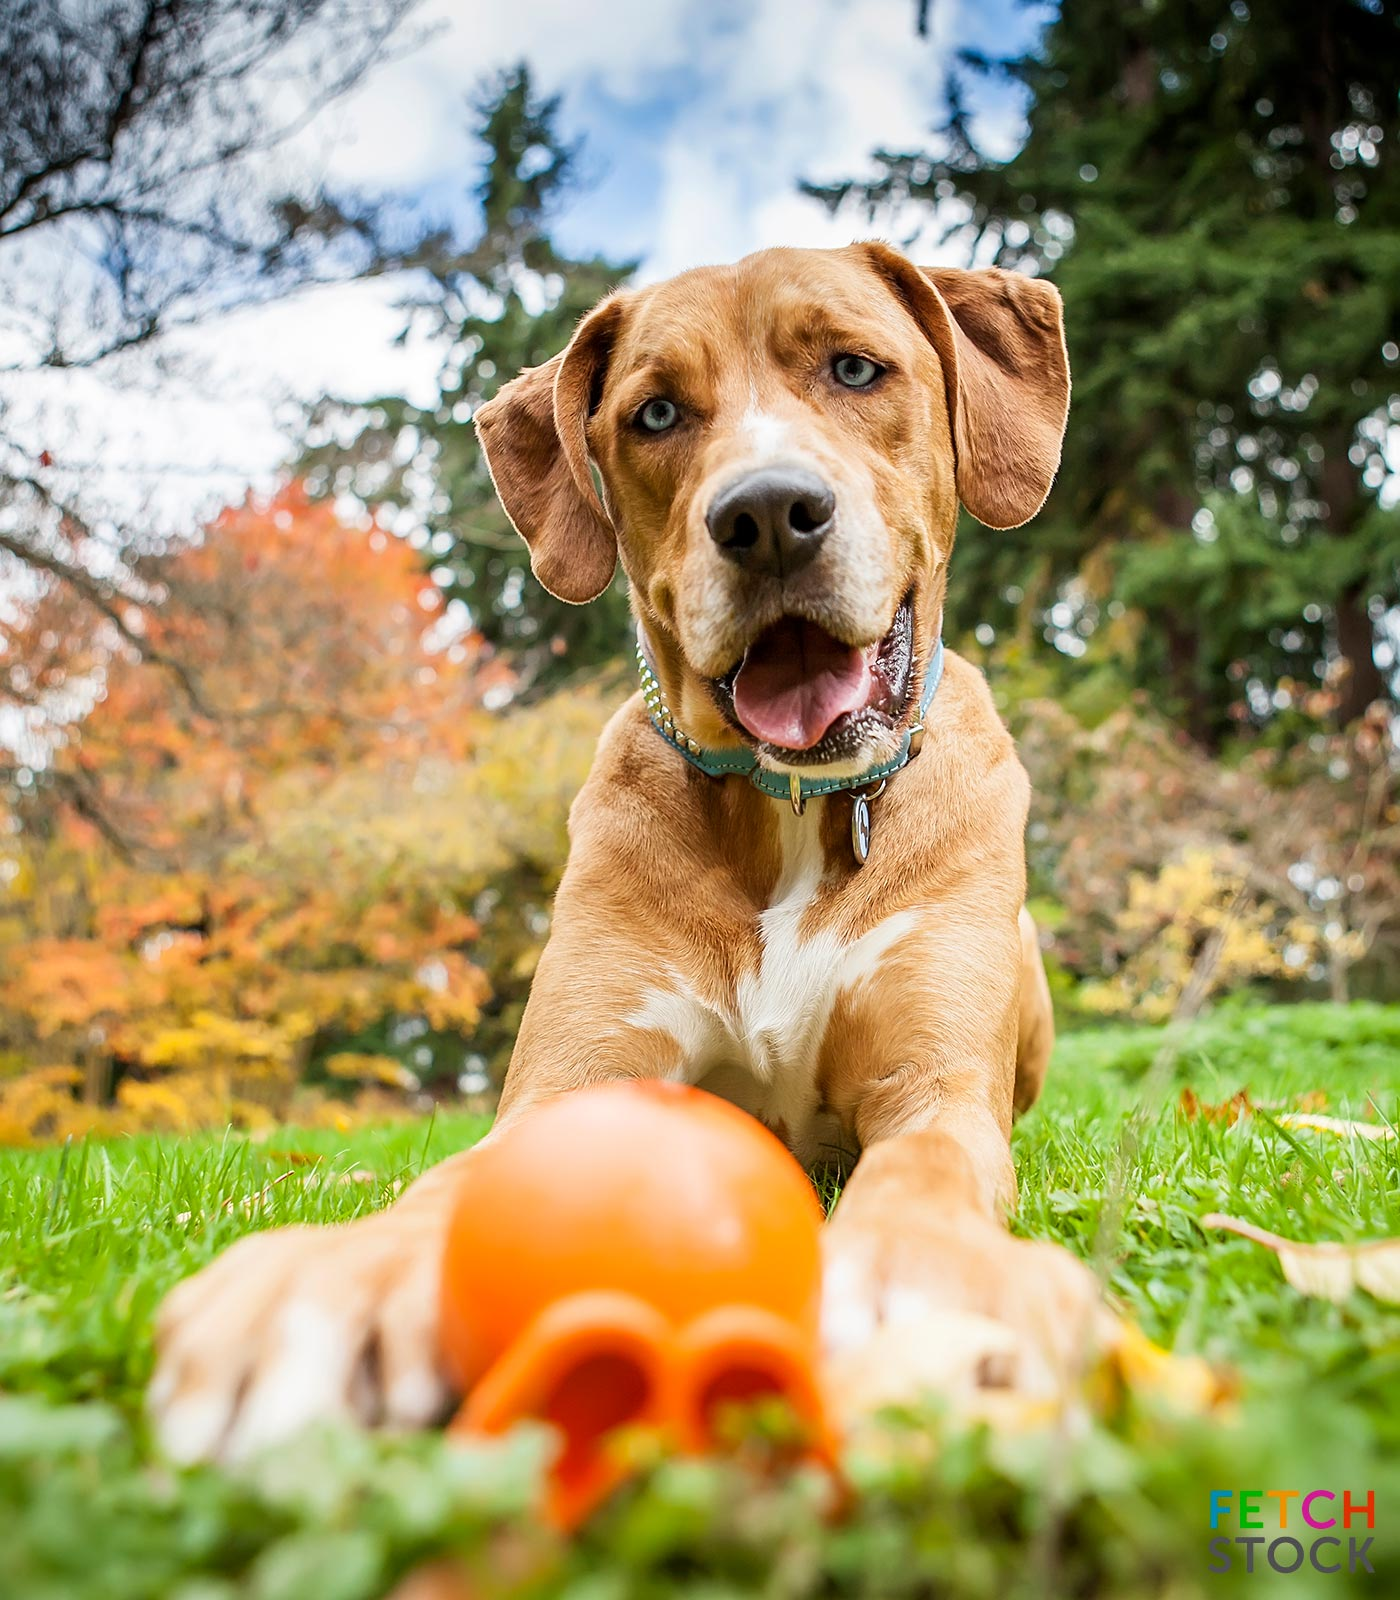 Fetch_Stock_PP2817_thumb_watermark by Copyright Jamie Piper..